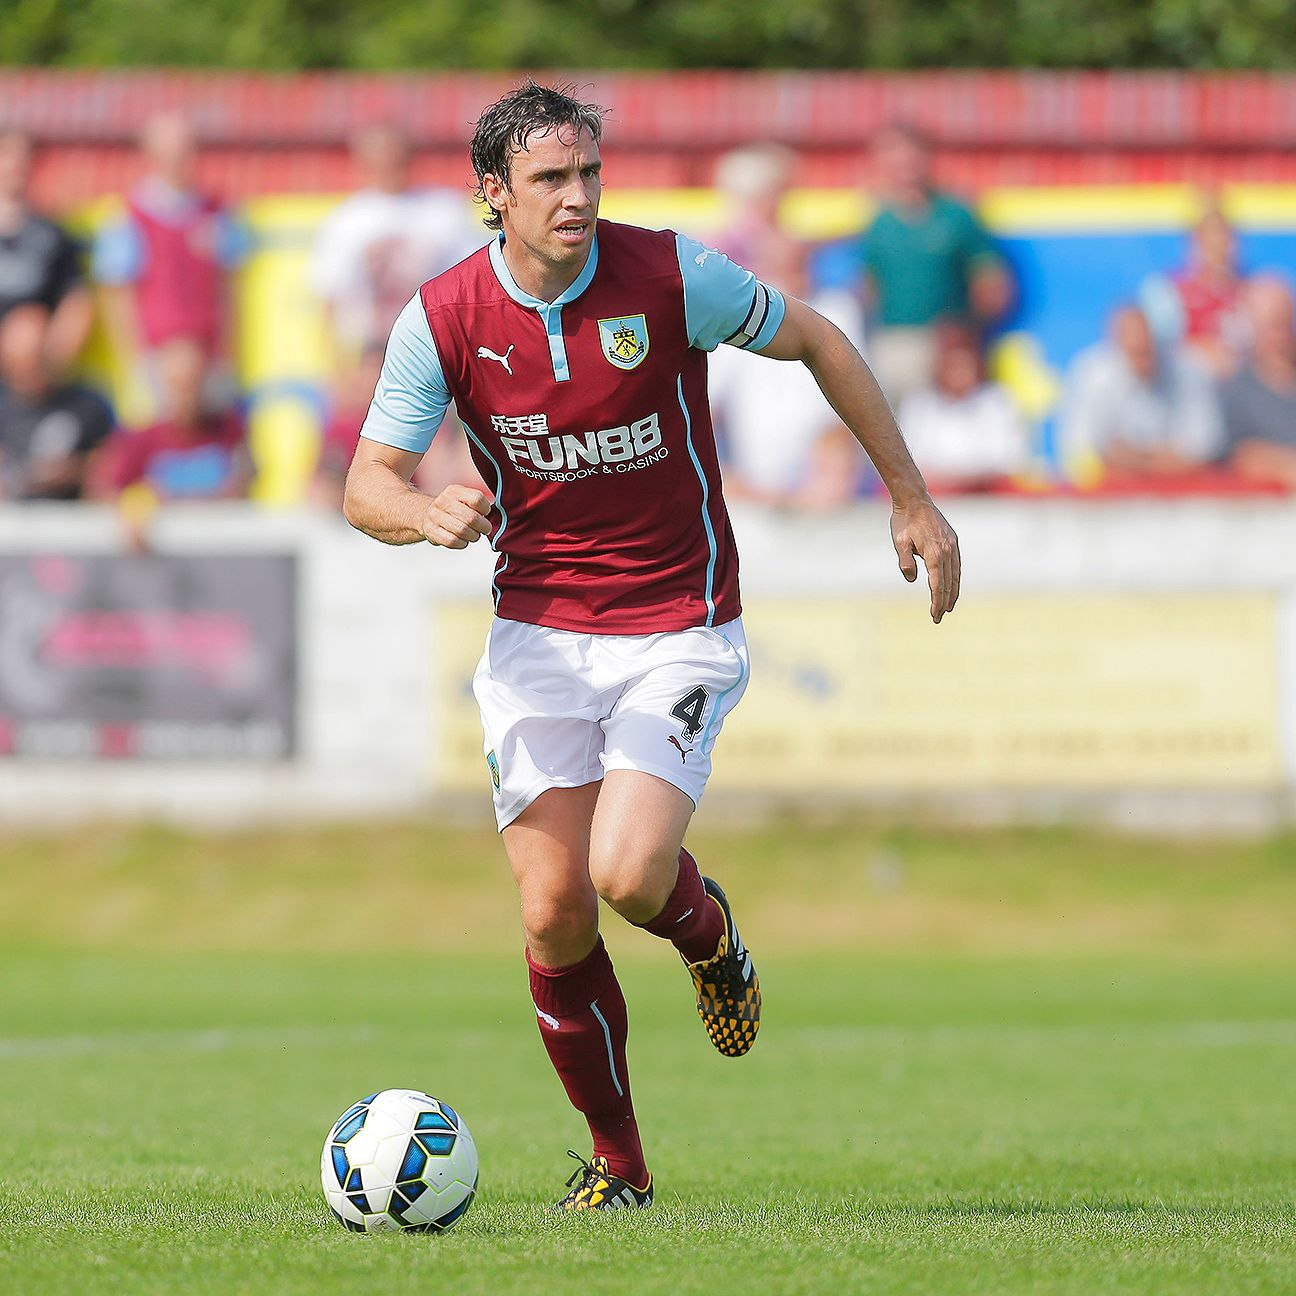 Veteran defender Michael Duff will be tasked with stopping Chelsea's Diego Costa on Monday.